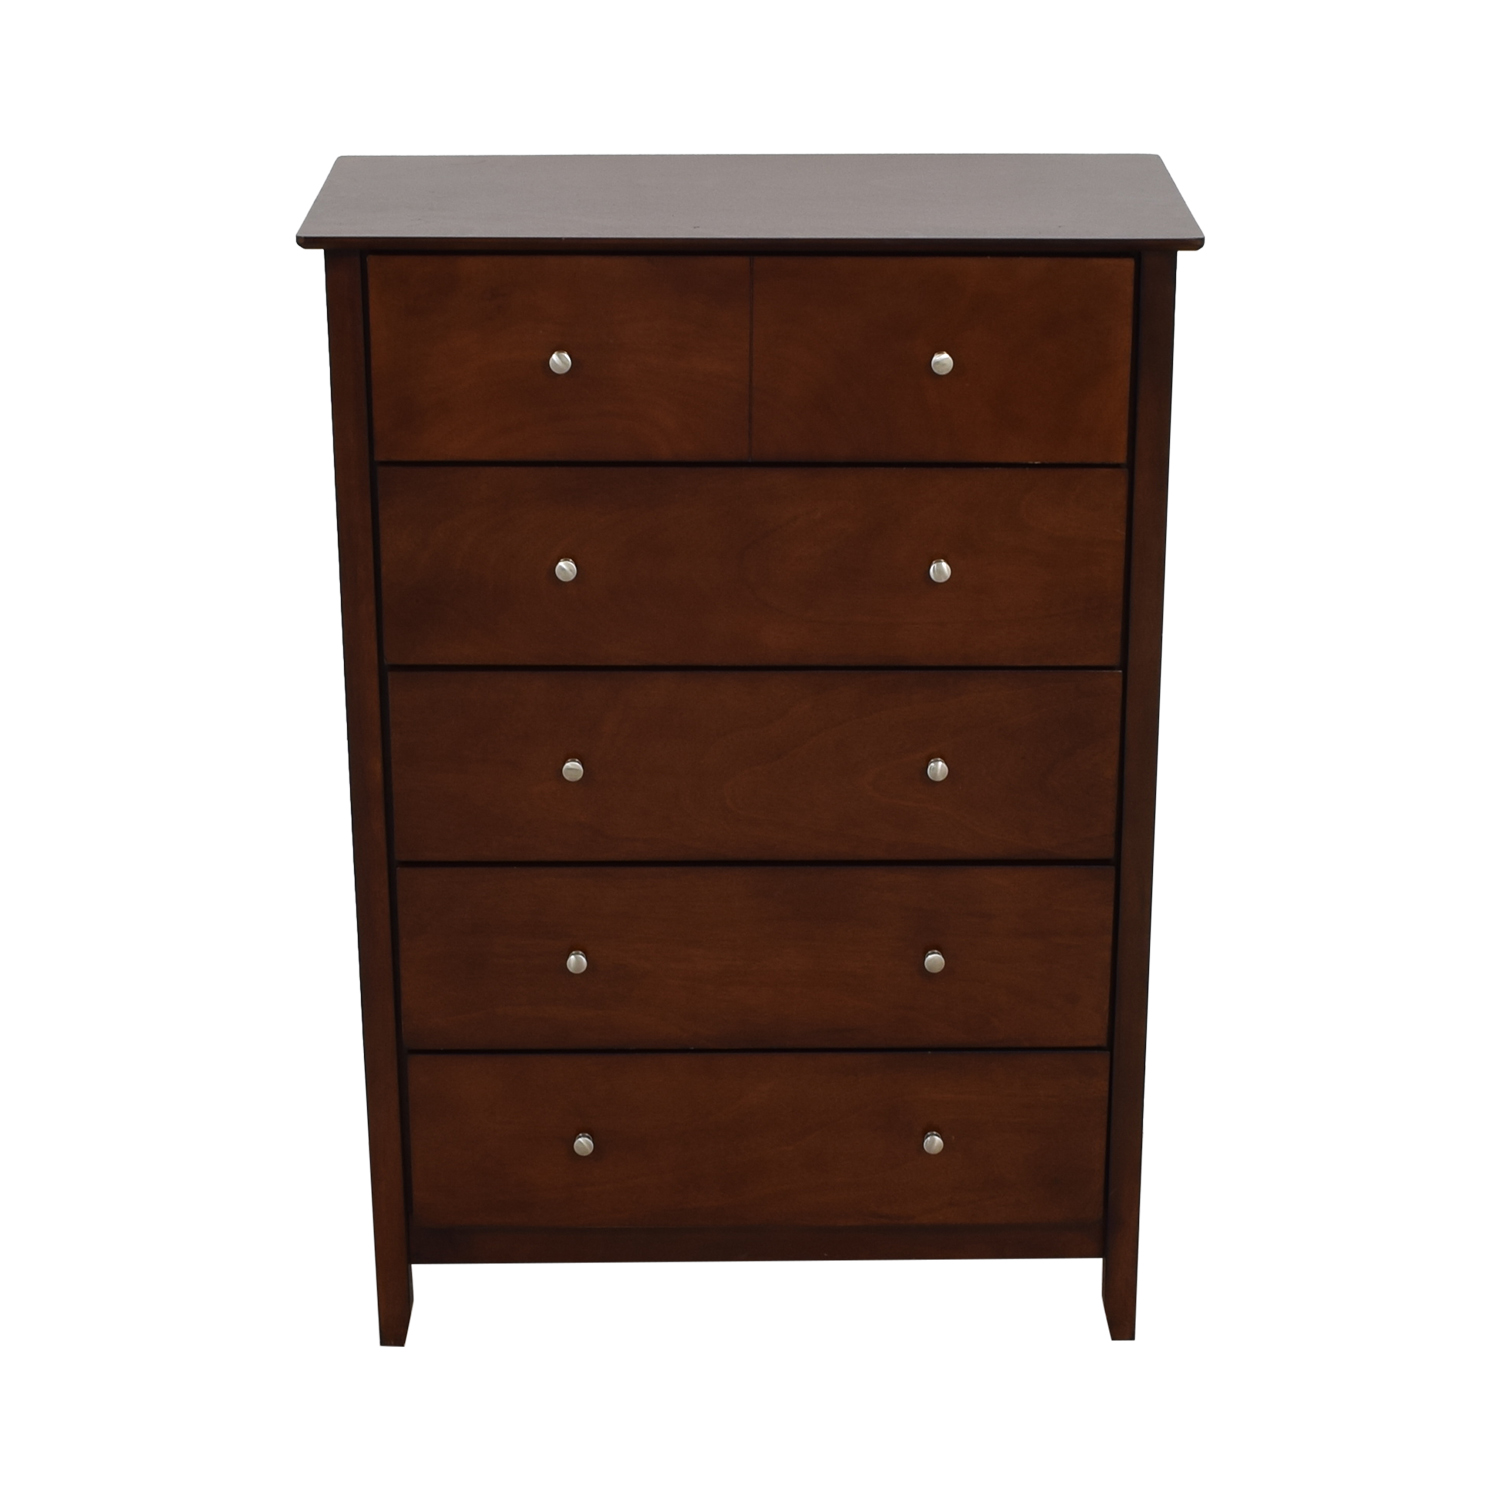 buy Bob's Furniture Bob's Furniture Five-Drawer Dresser online